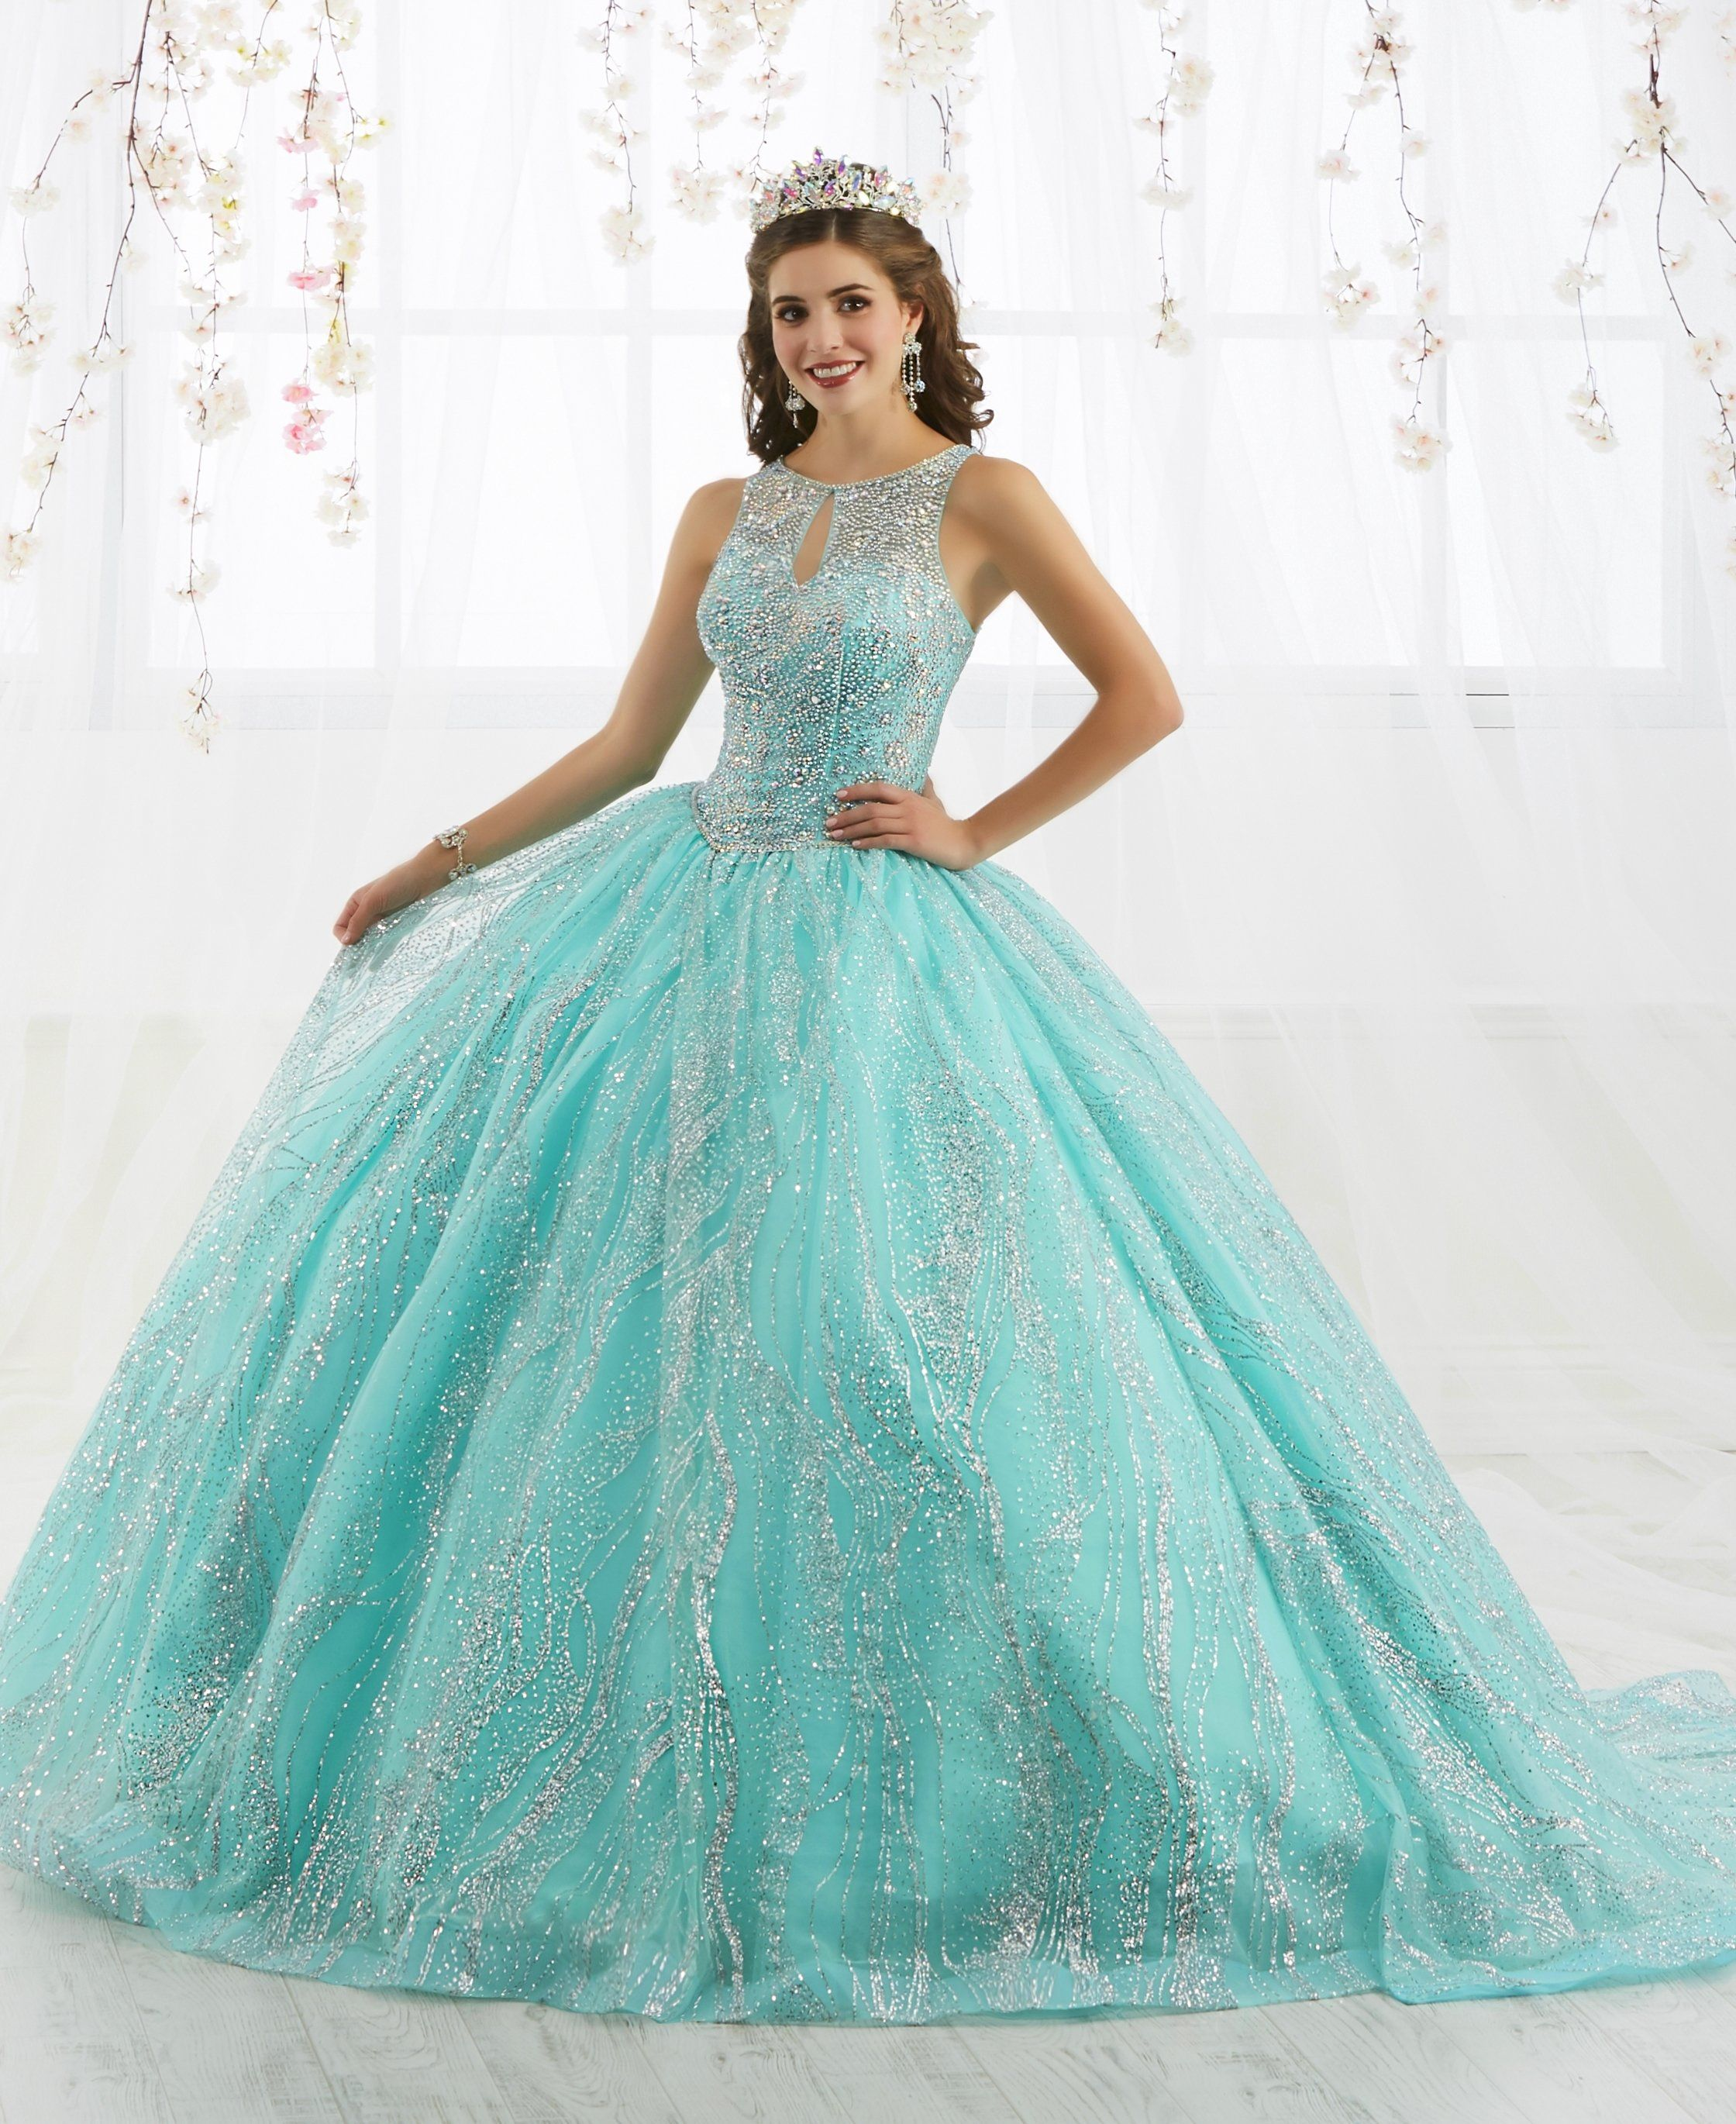 2ca6159825 Aqua Blue And Silver Quinceanera Dresses